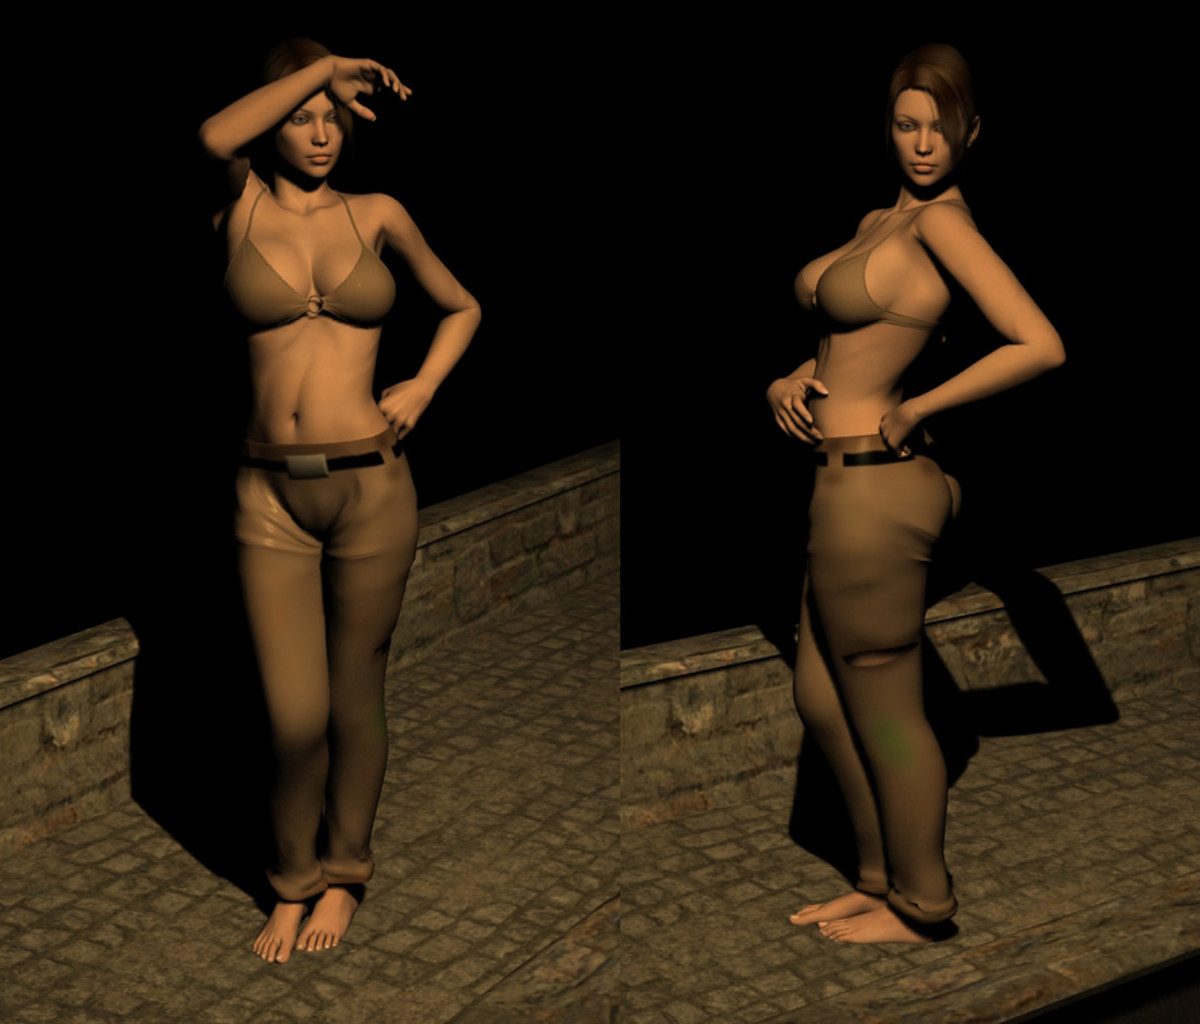 And here is our final product (her pants). Not everything lined up perfectly, but tweaks are easy once you see it on the 3D model. (I forgot to apply the bump map, so to see an example, look at the title picture of this article.)